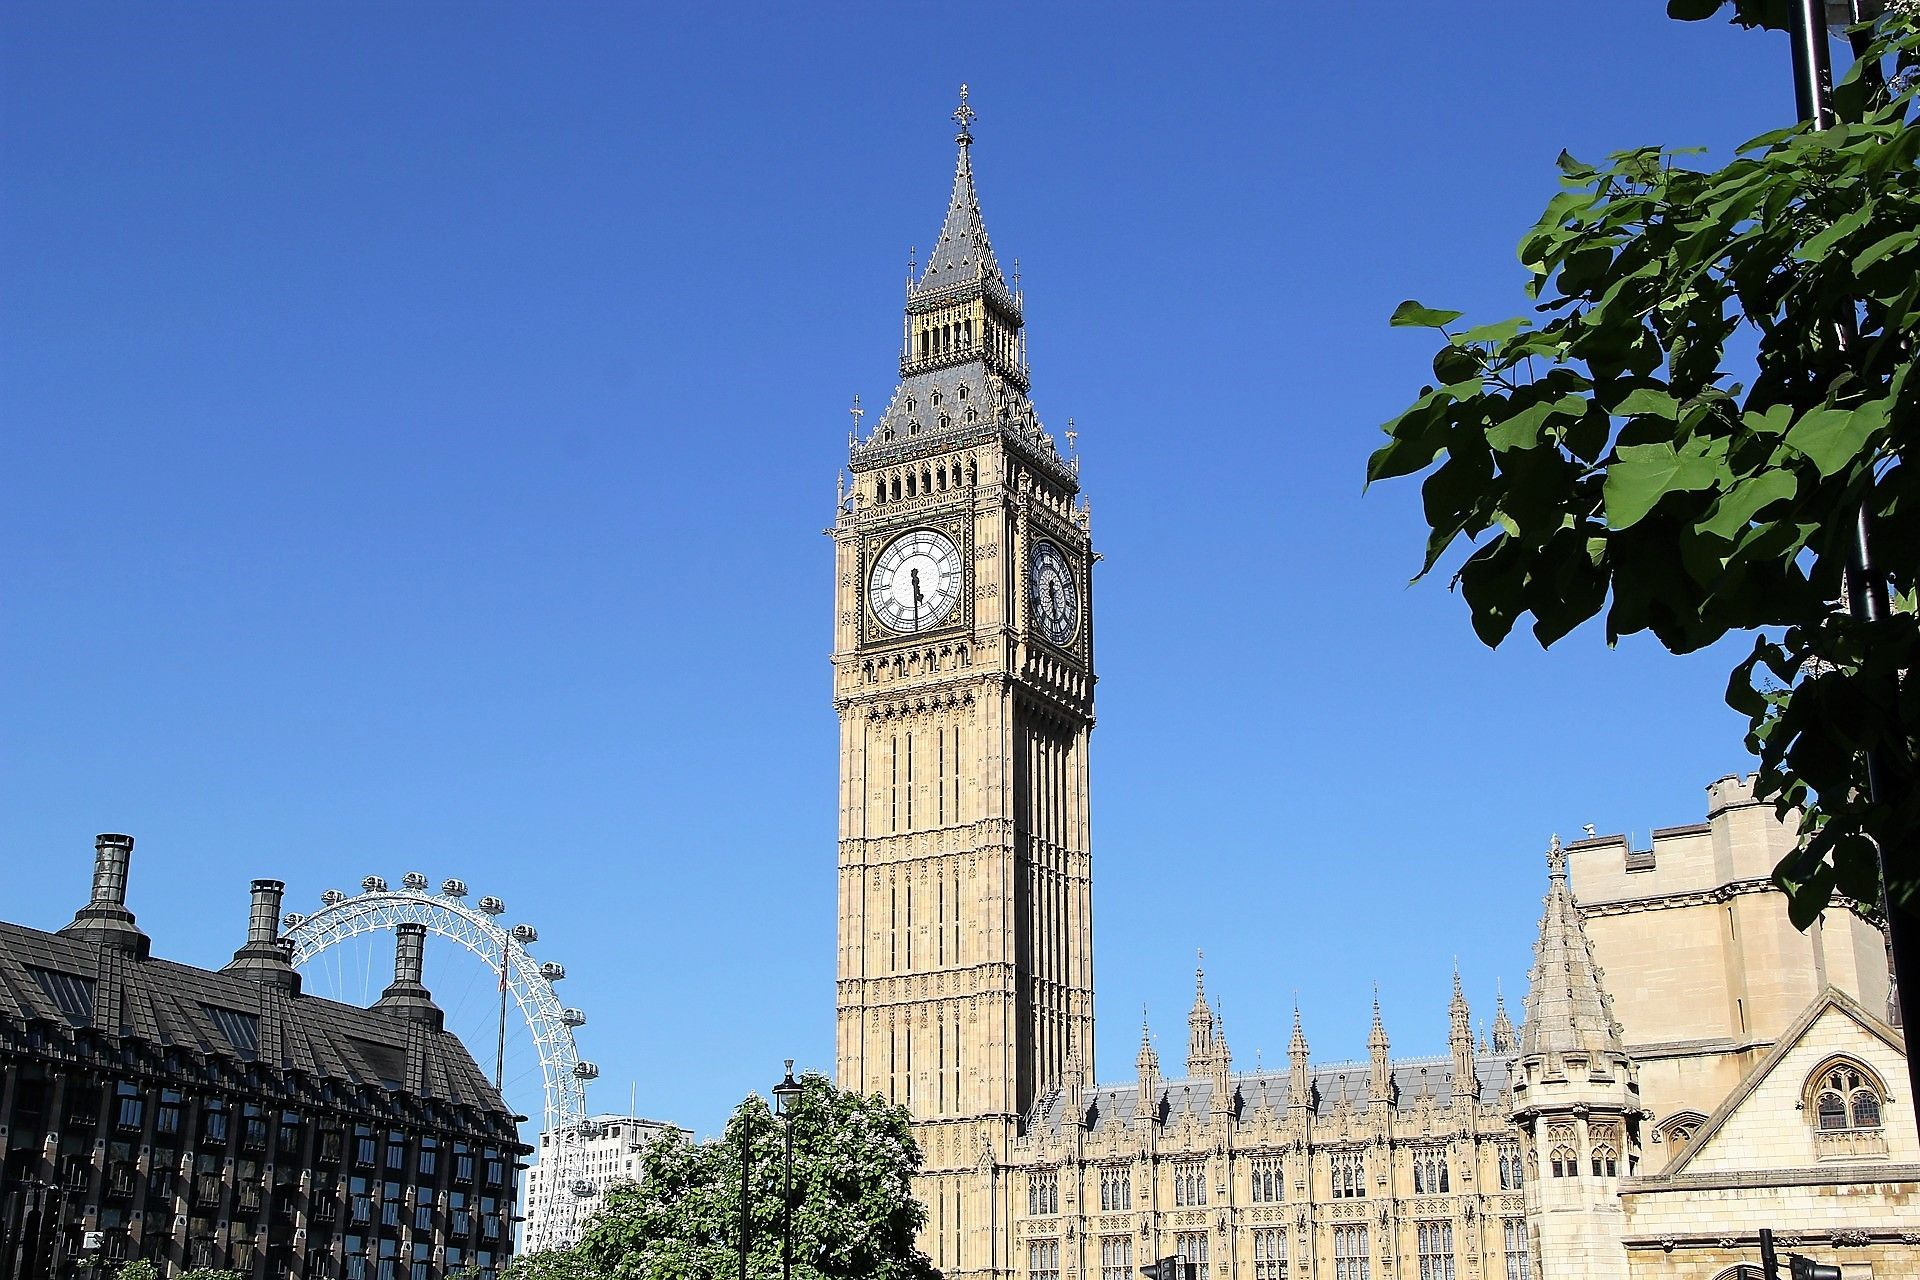 Big Ben is the nickname for the Great Bell of the clock at the north end of the Palace of Westminster in London[